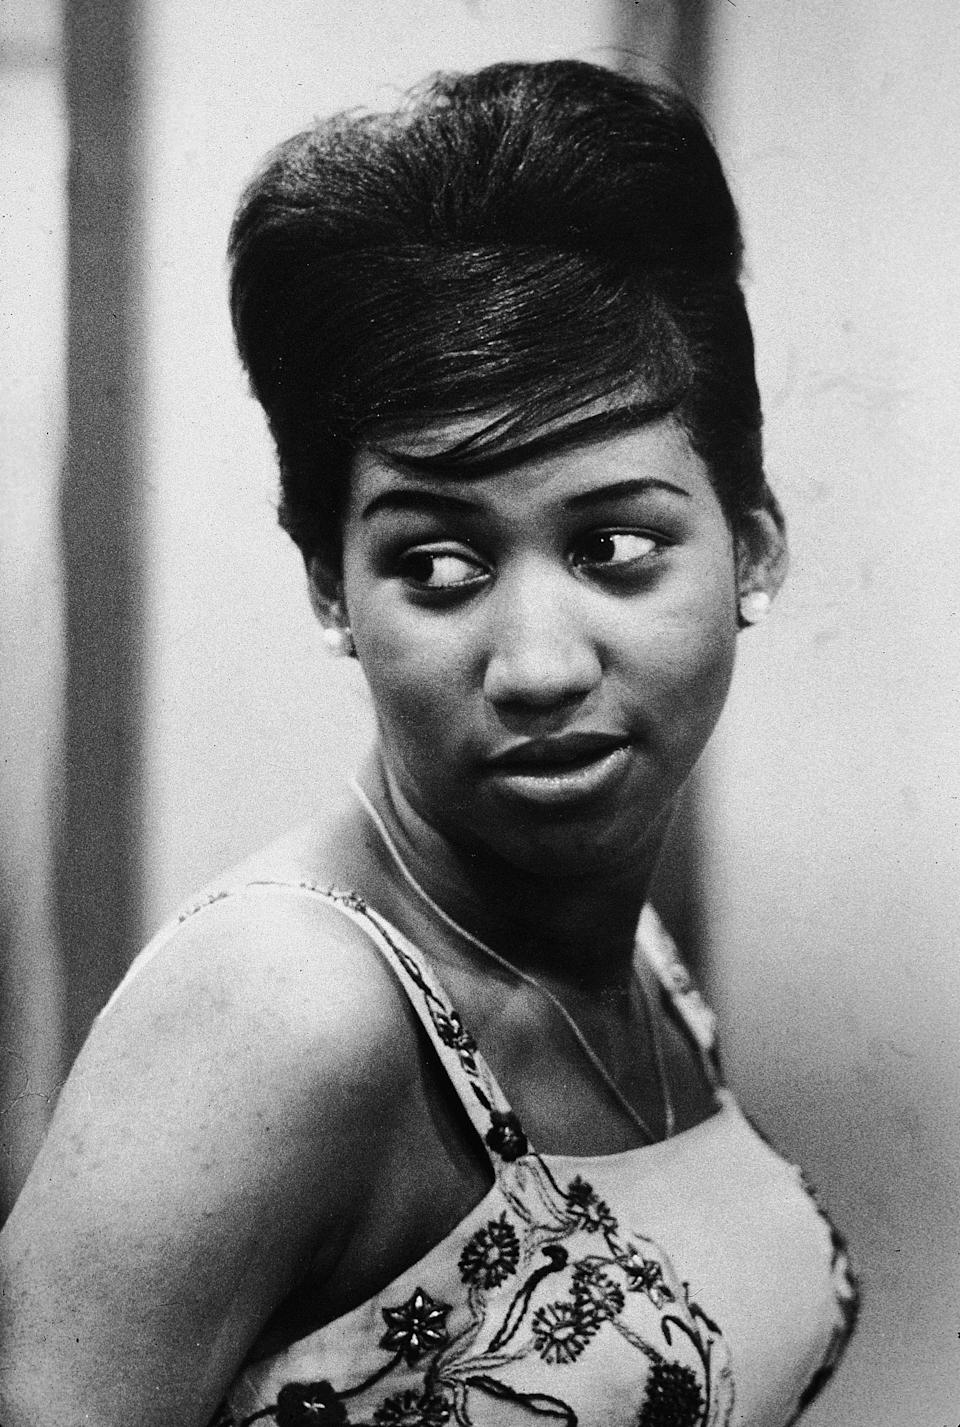 <p>Aretha Franklin looks over her shoulder, with her hair pulled up into a beehive style. Franklin was the first woman to be inducted into the Rock and Roll Hall of Fame. (Photo: Getty Images) </p>